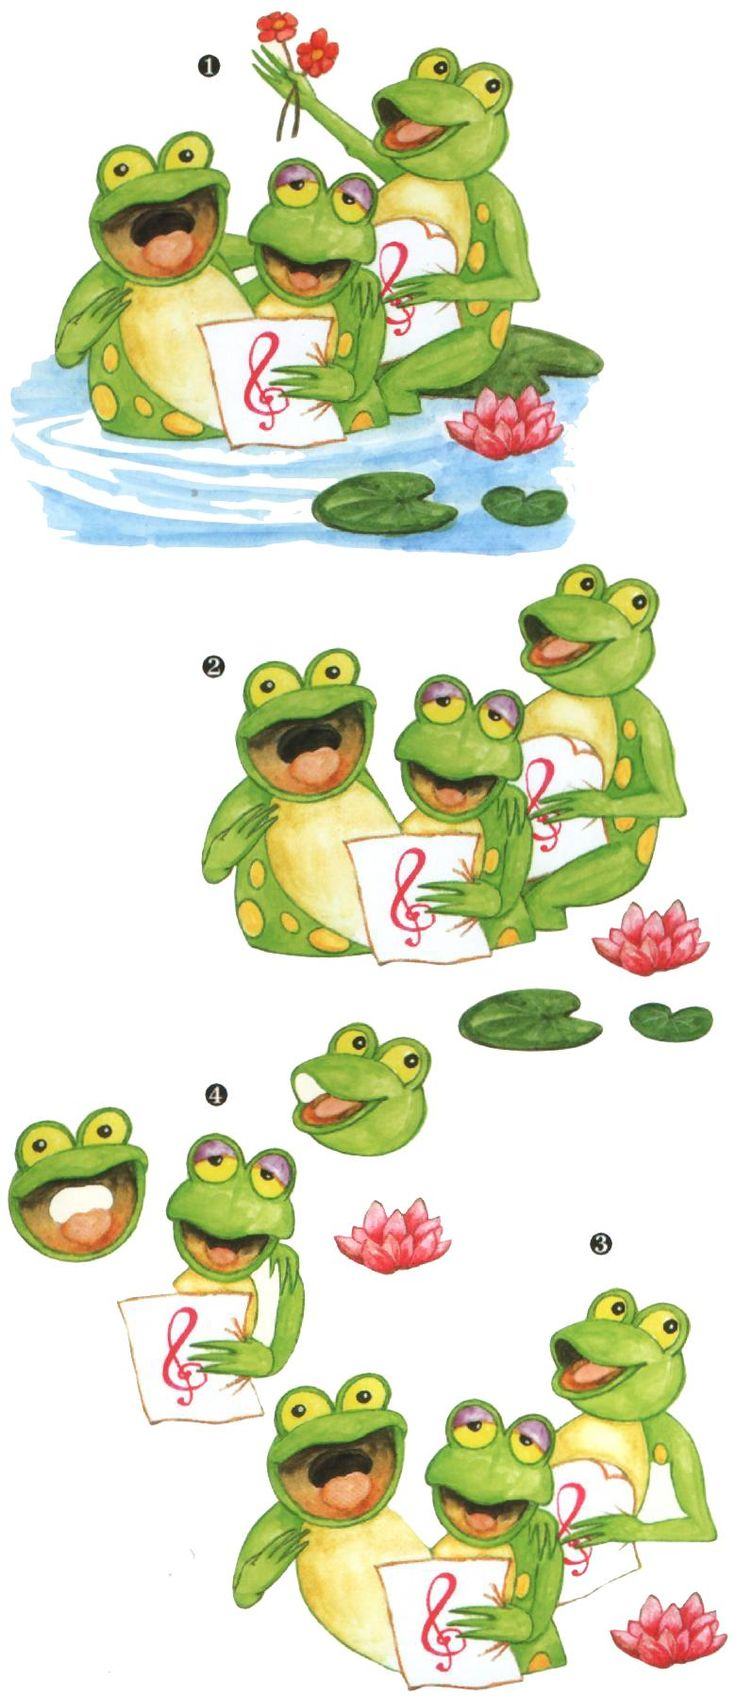 92 Best 3d Kikkers Images On Pinterest Frogs Animaux And Craft